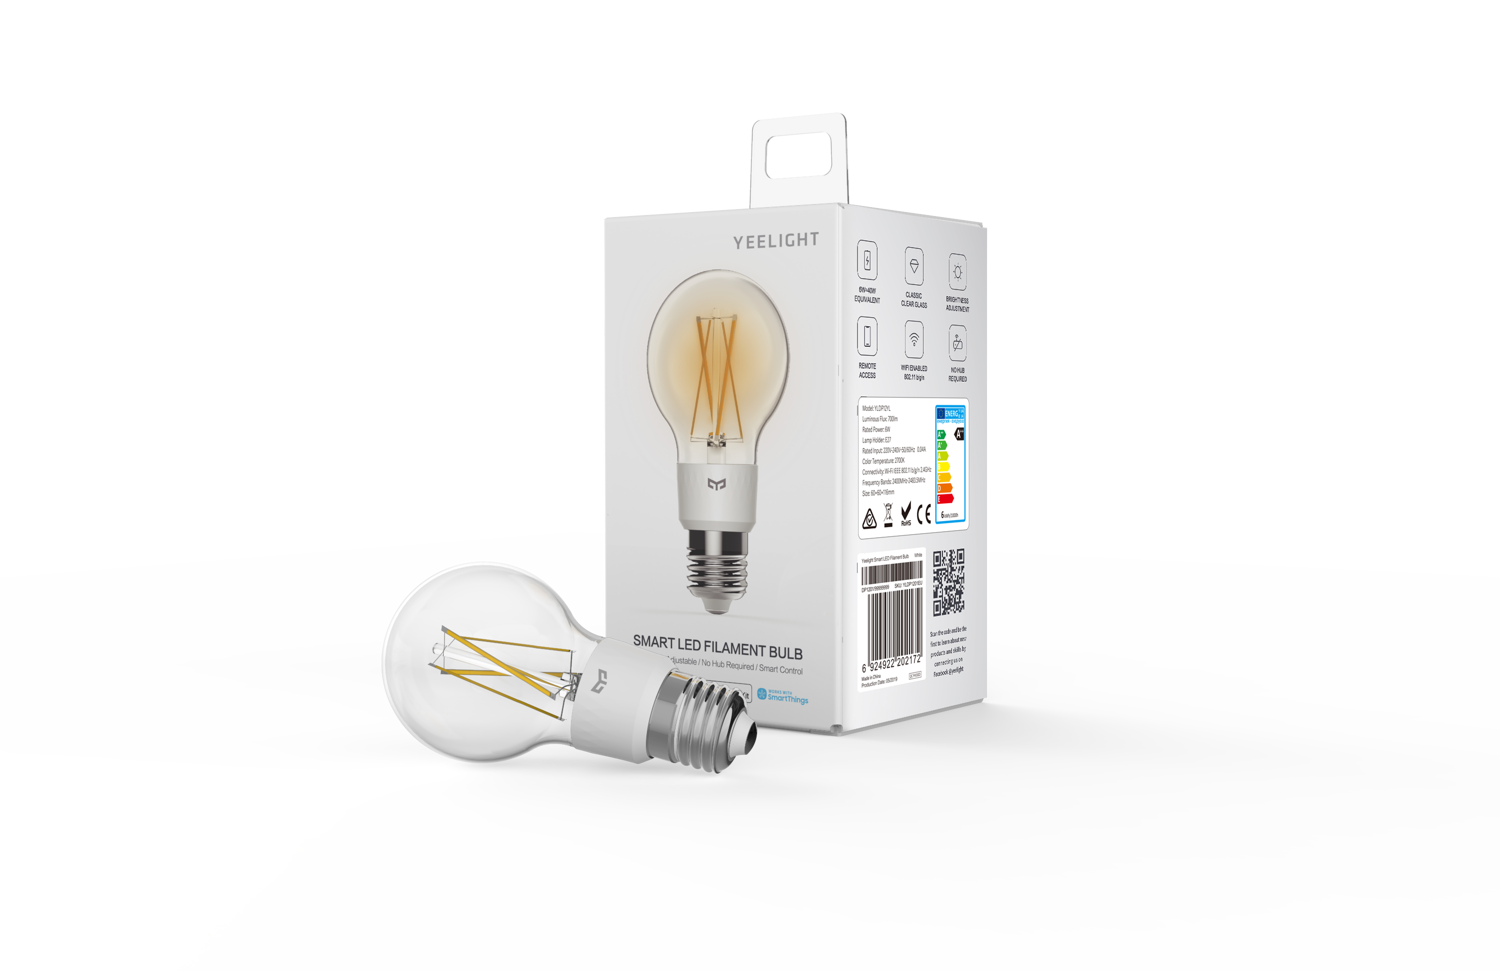 YEELIGHT Smart LED Filament Bulb - Lampadina Led WiFi Filamento 6W 700lm 2700K